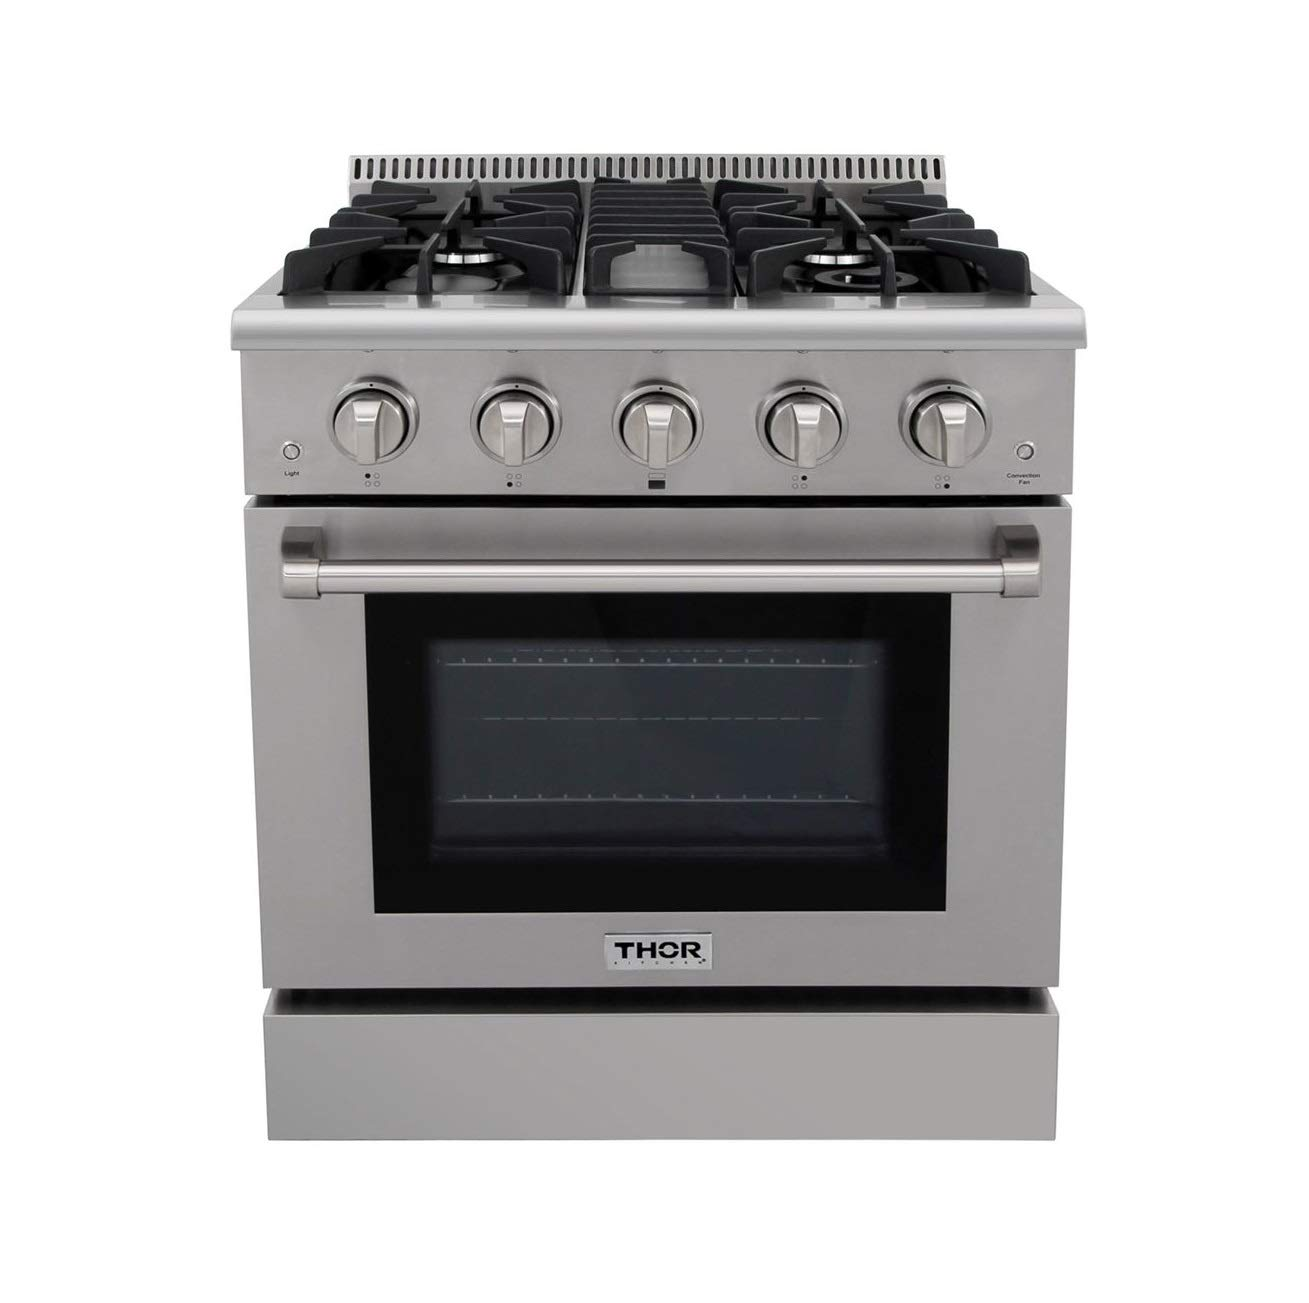 Thor kitchen range HRG3080U review: